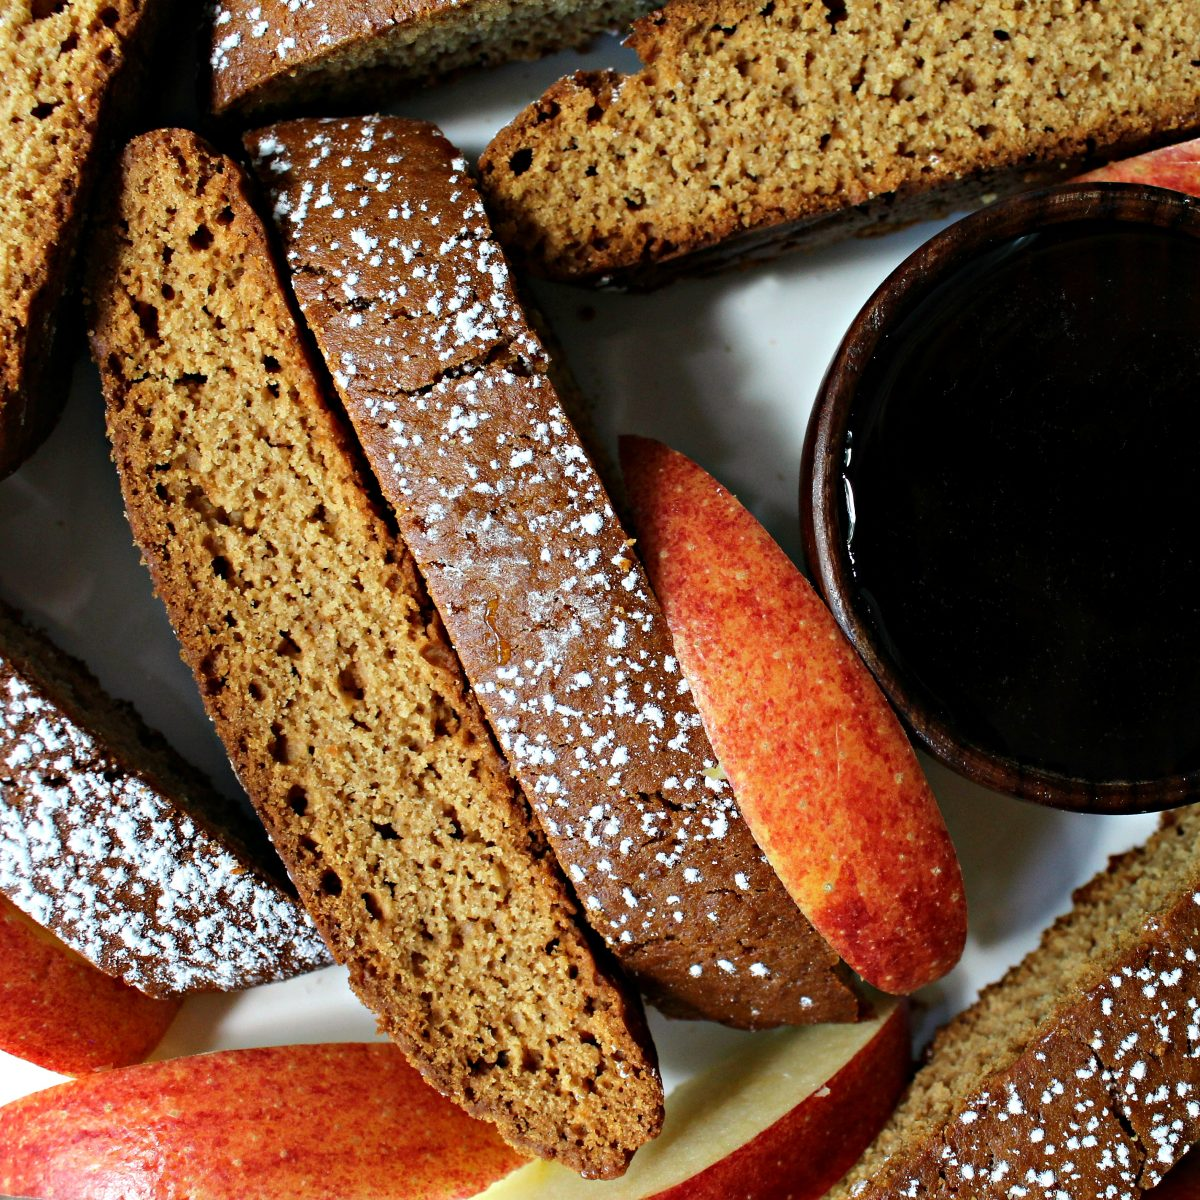 Closeup of biscotti and apple slices next to a bowl of honey.